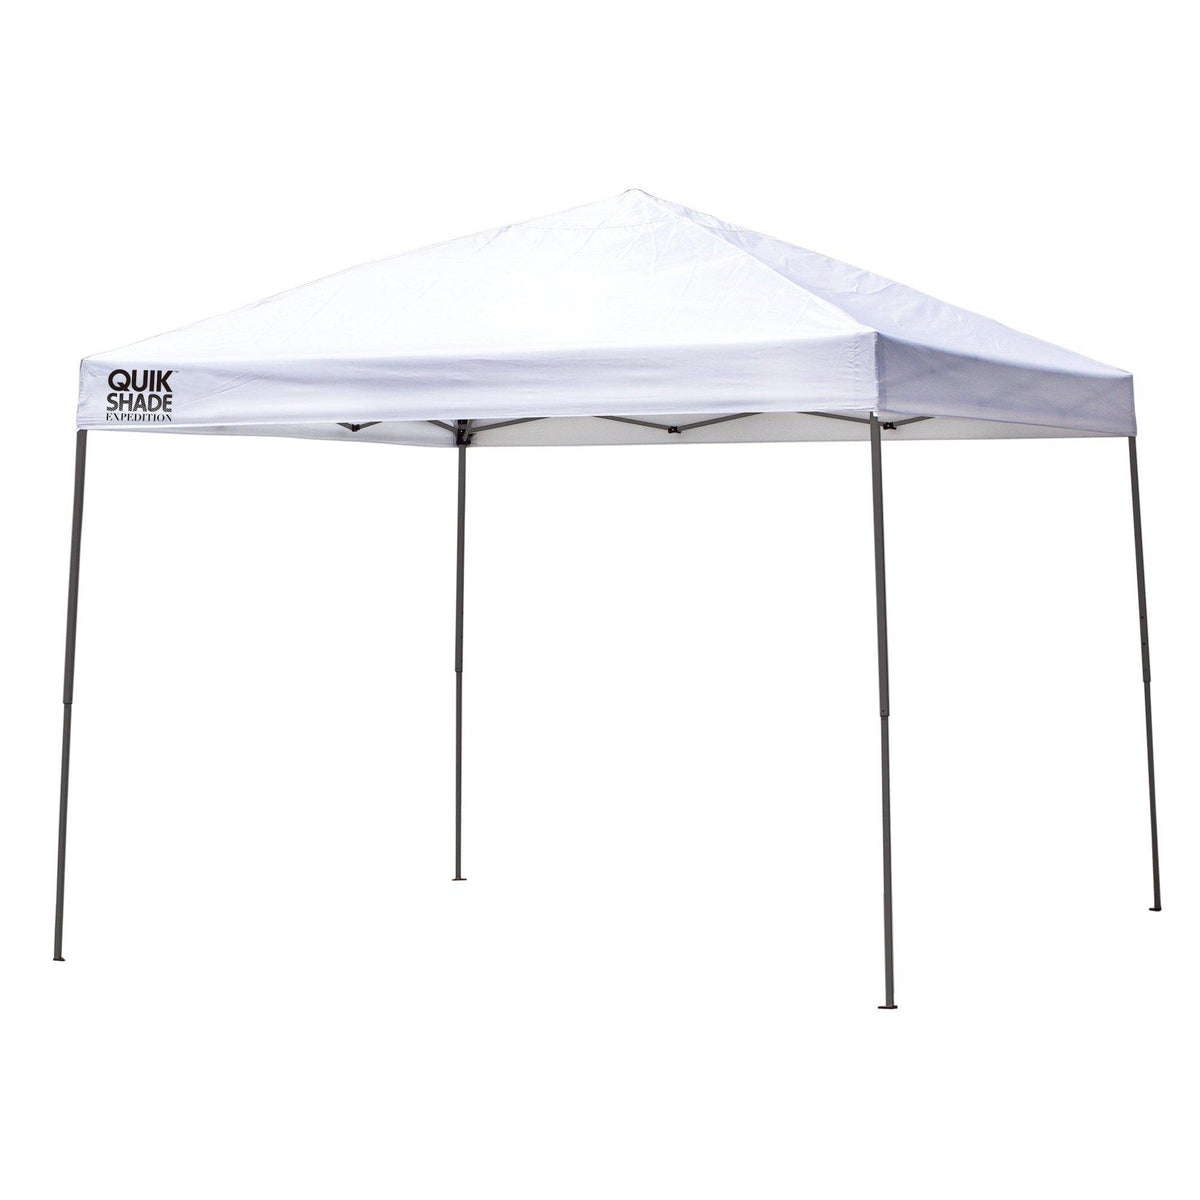 Quik Shade Expedition 10 x 10 ft. Straight Leg Canopy, White